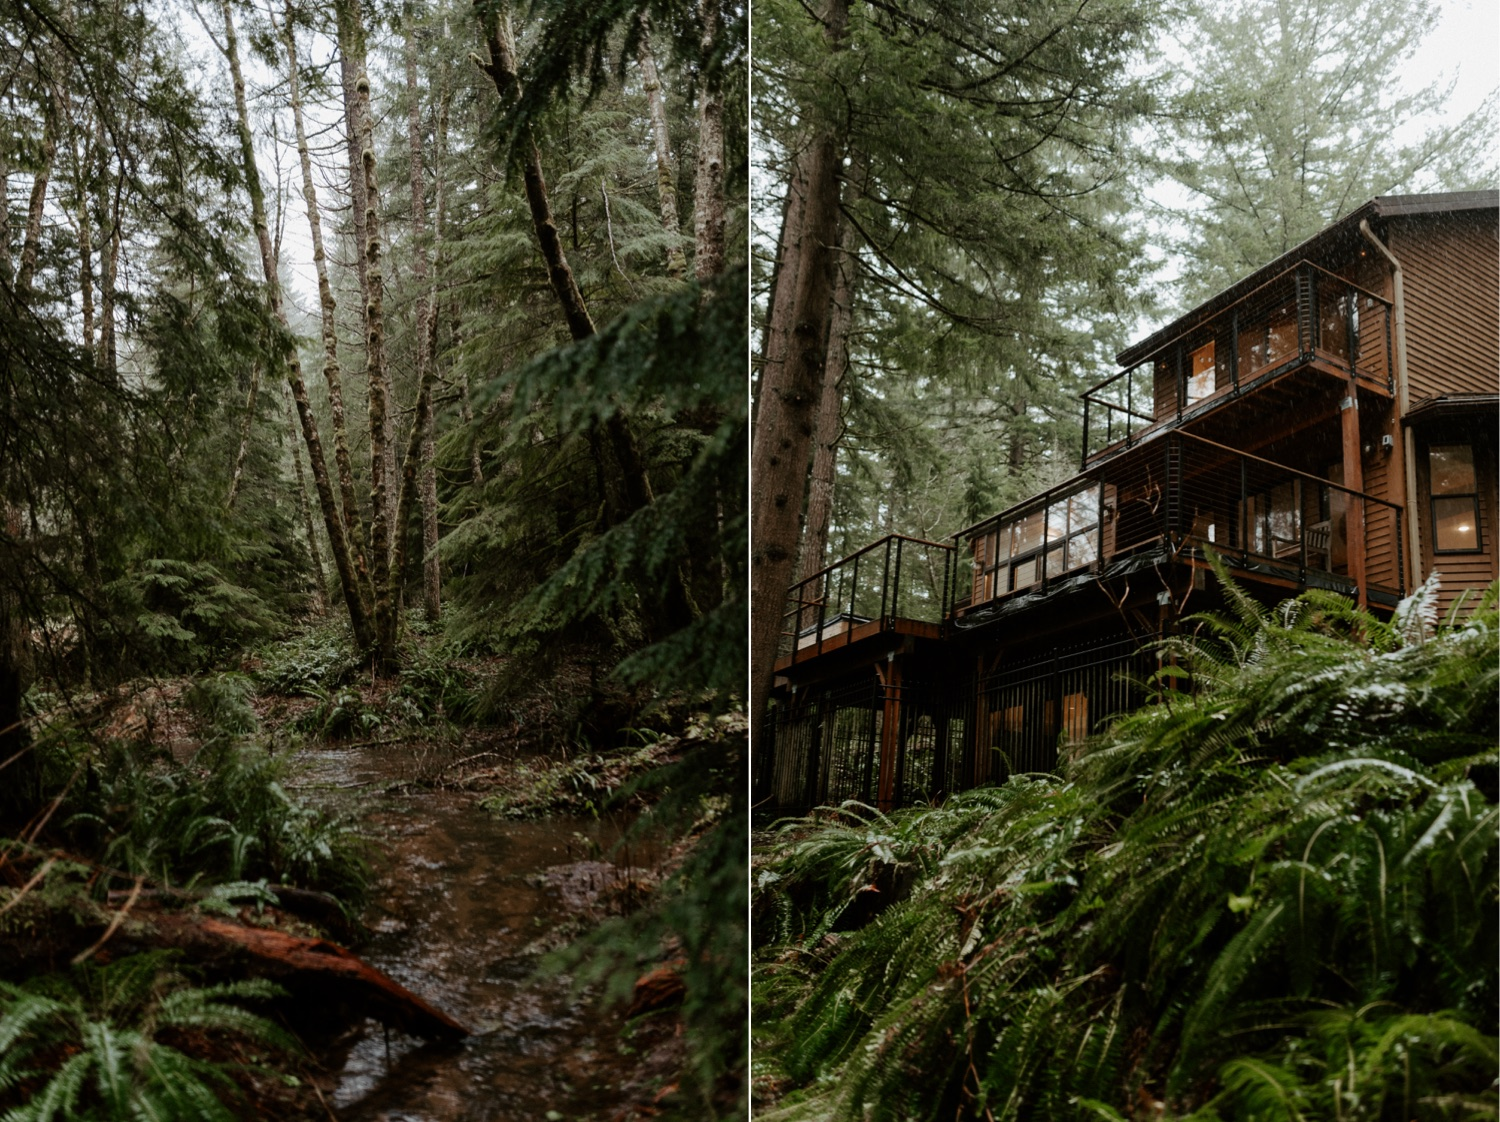 The Woodlands House Sandy Oregon Elopement Portland Elopement Photographer PNW Adventurous Elopement Anais Possamai Photography 002